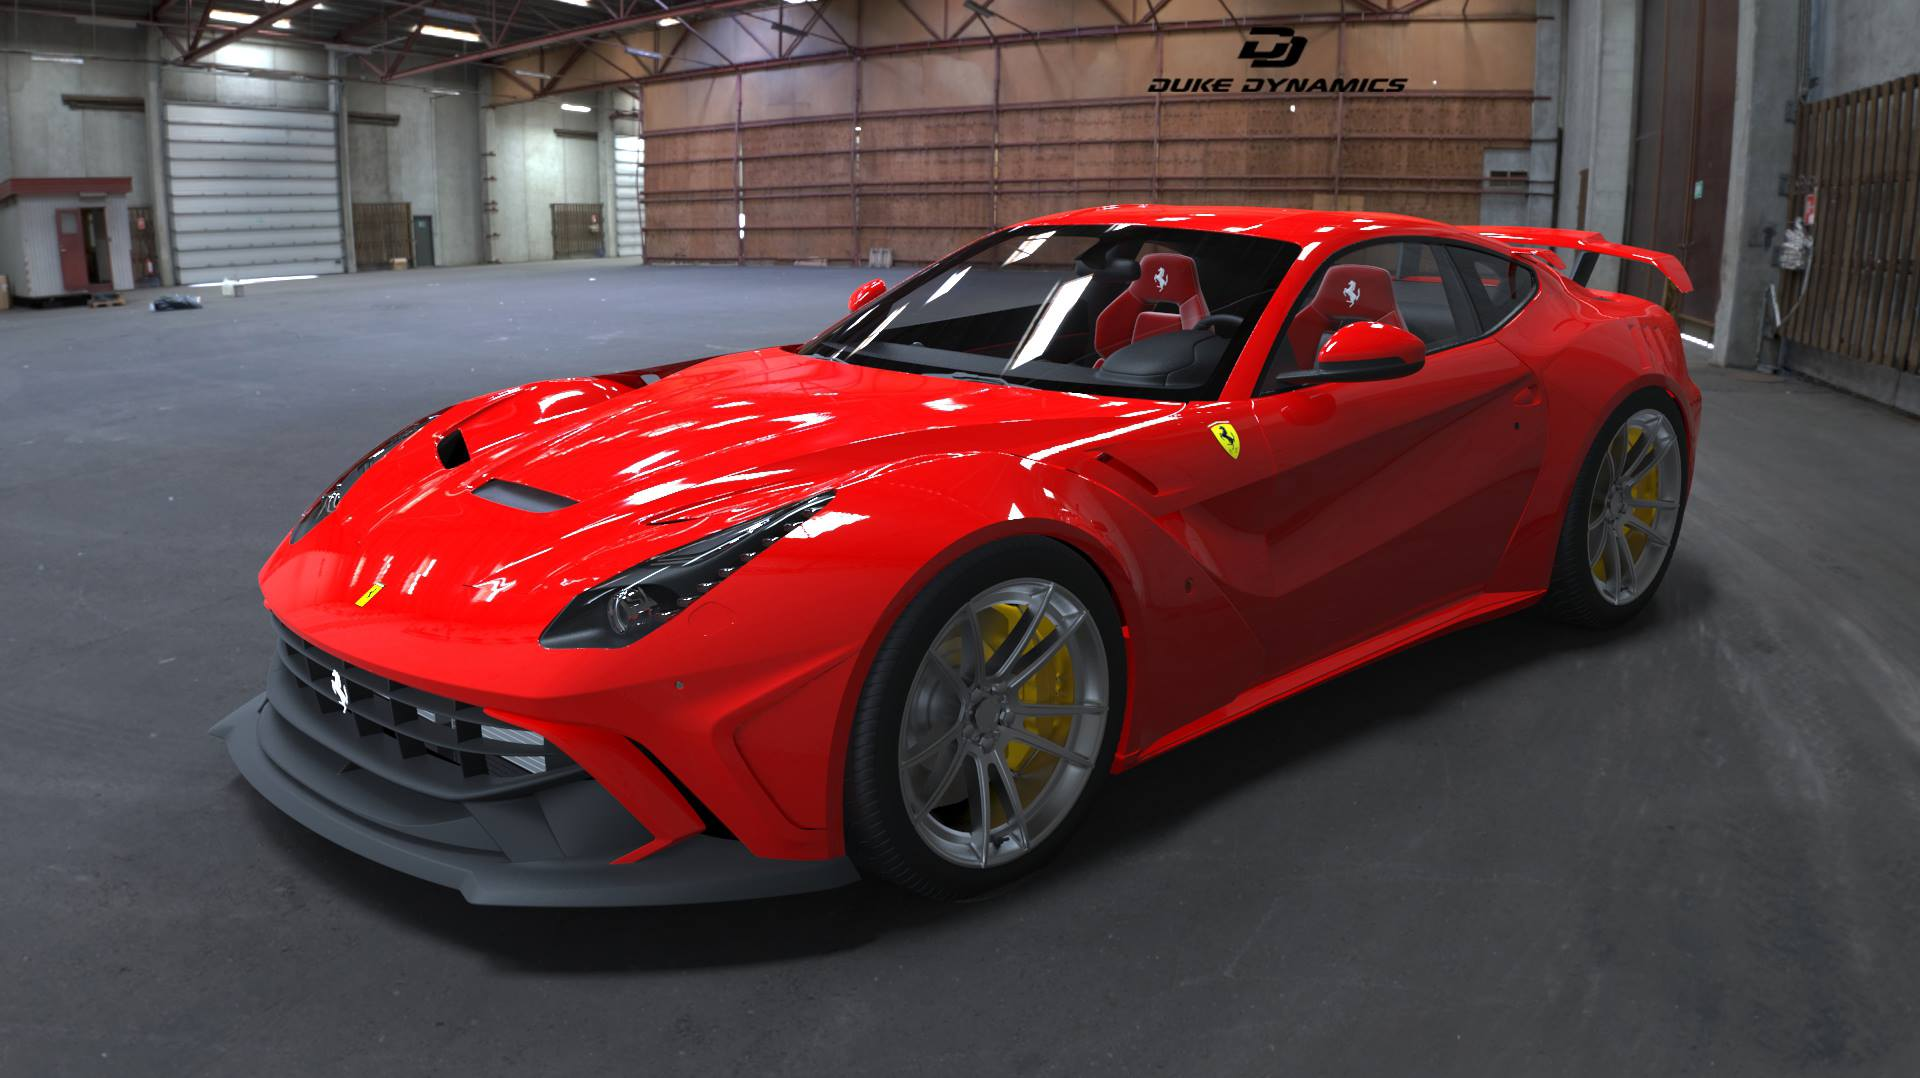 official: ferrari f12 widebodyduke dynamics - gtspirit